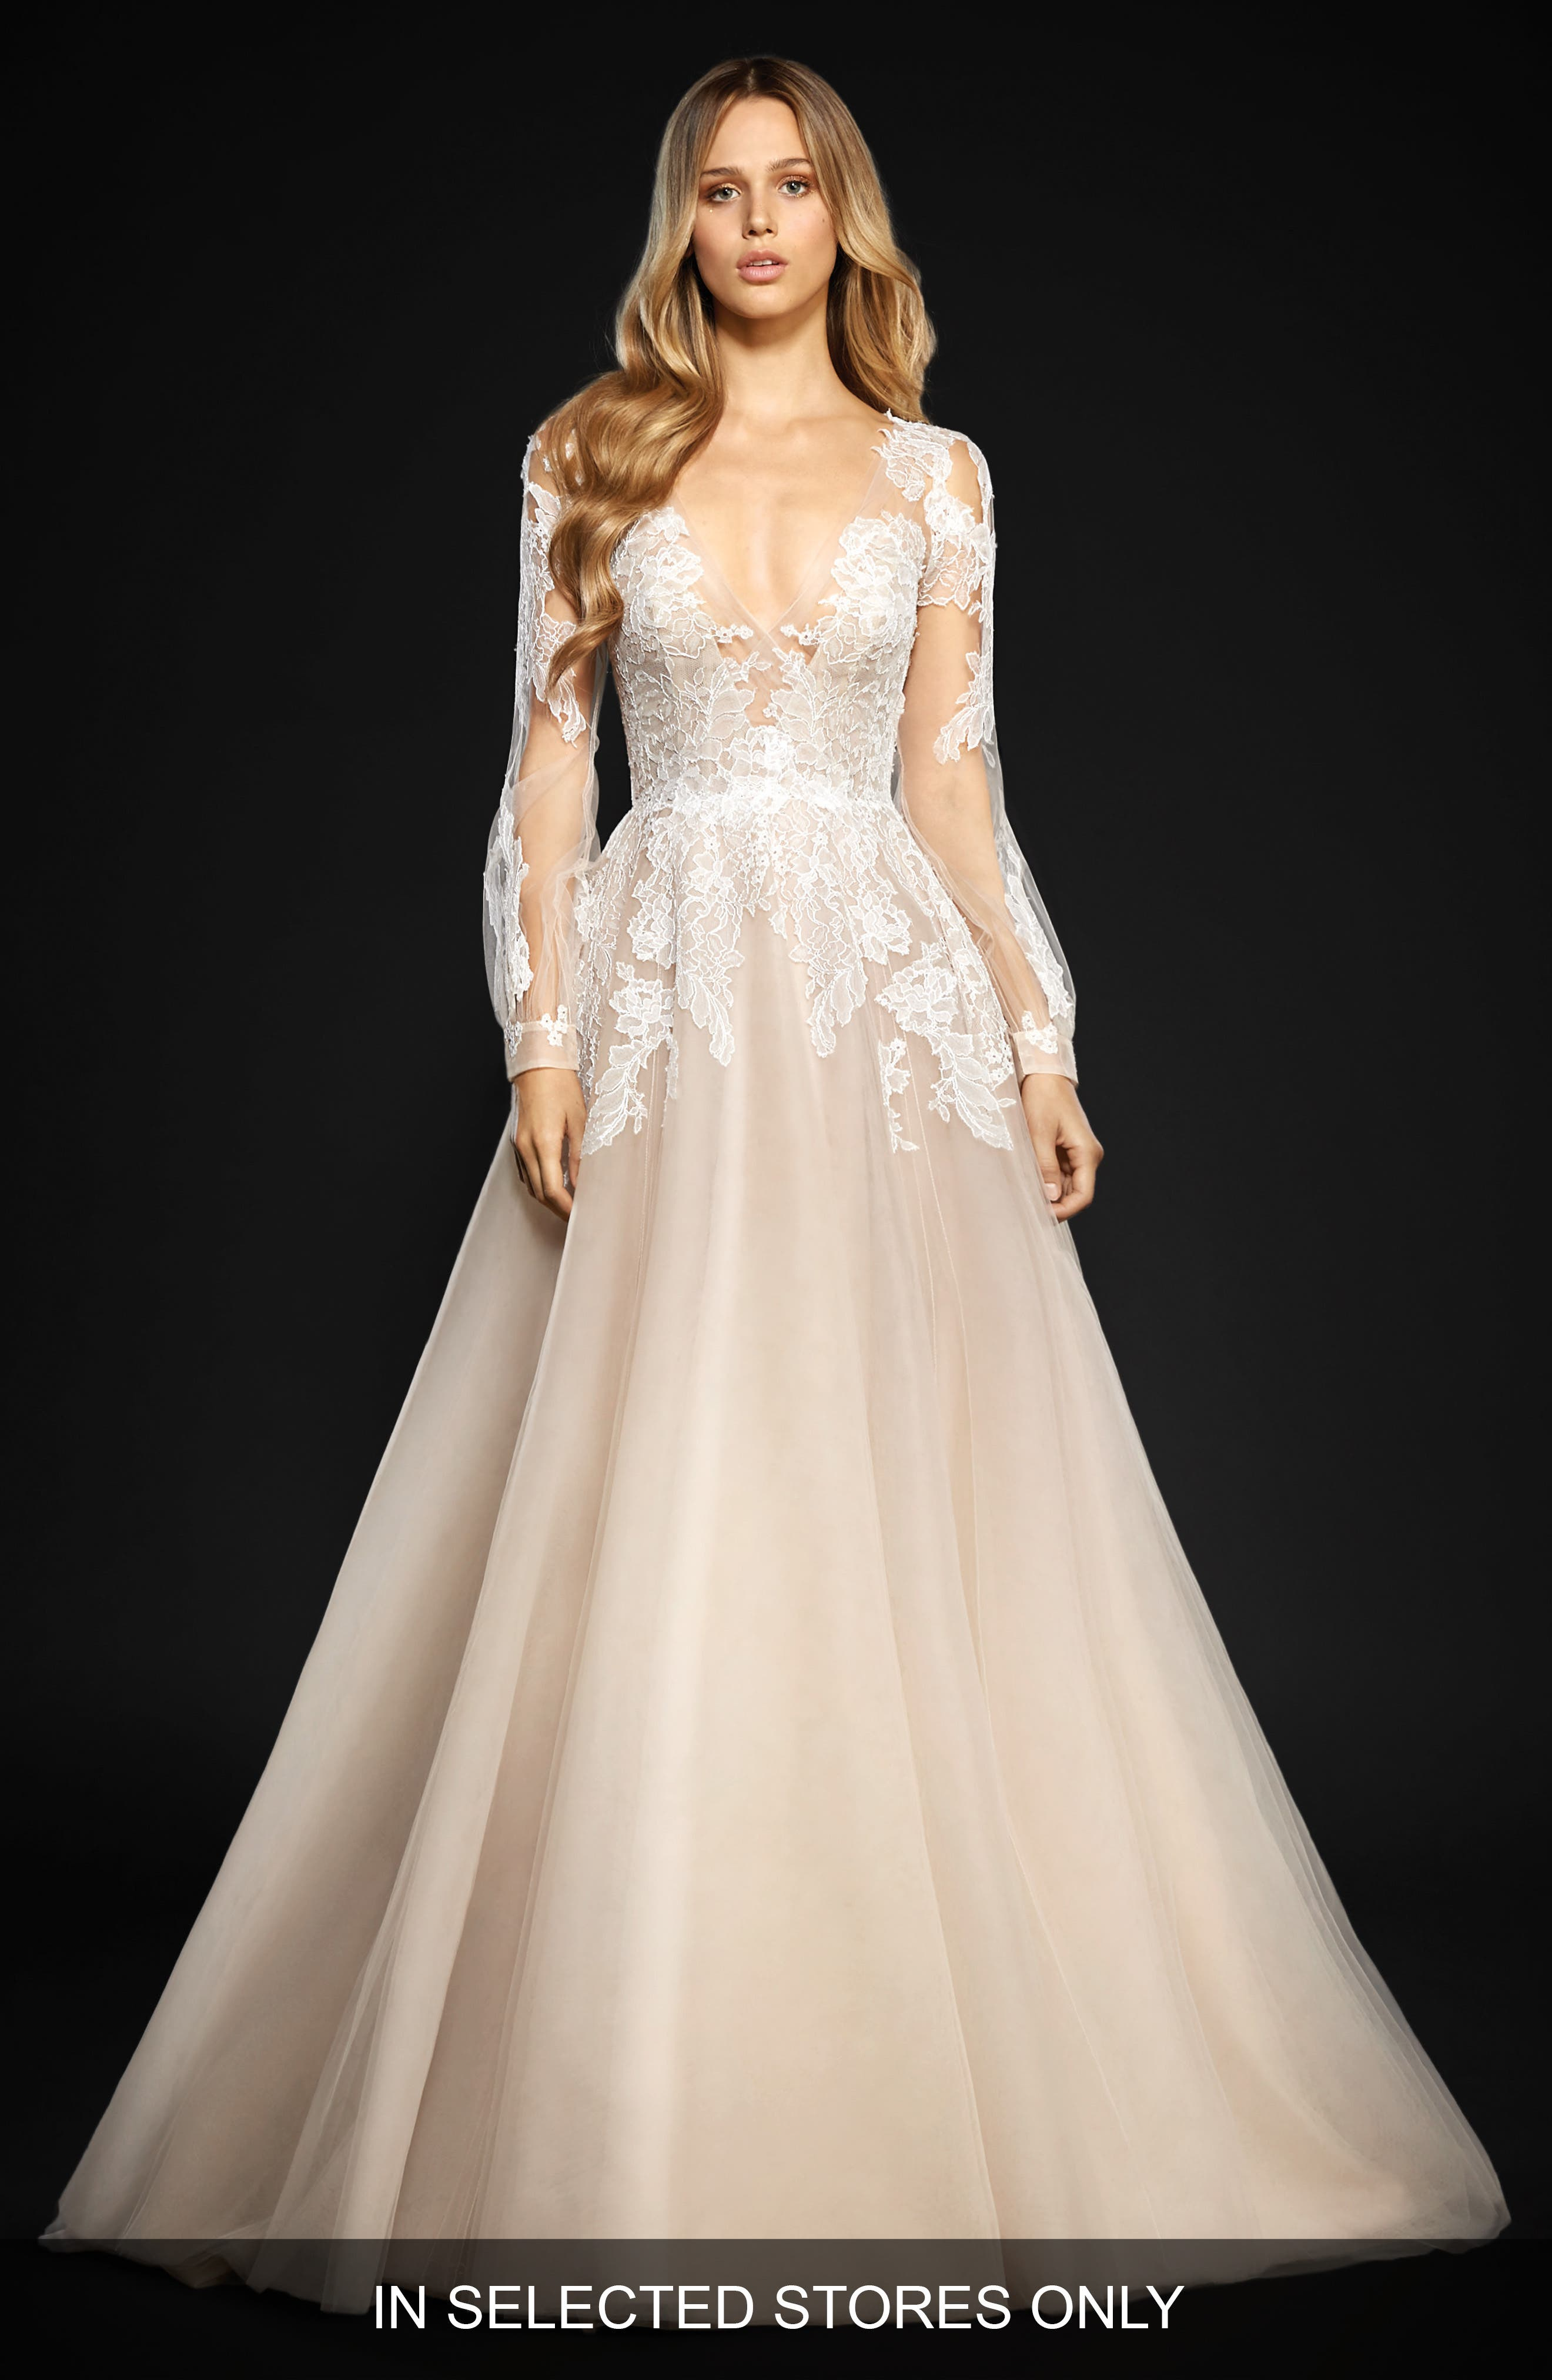 Winnie Long Sleeve Lace & Tulle Ballgown,                             Main thumbnail 1, color,                             CHARDONNAY